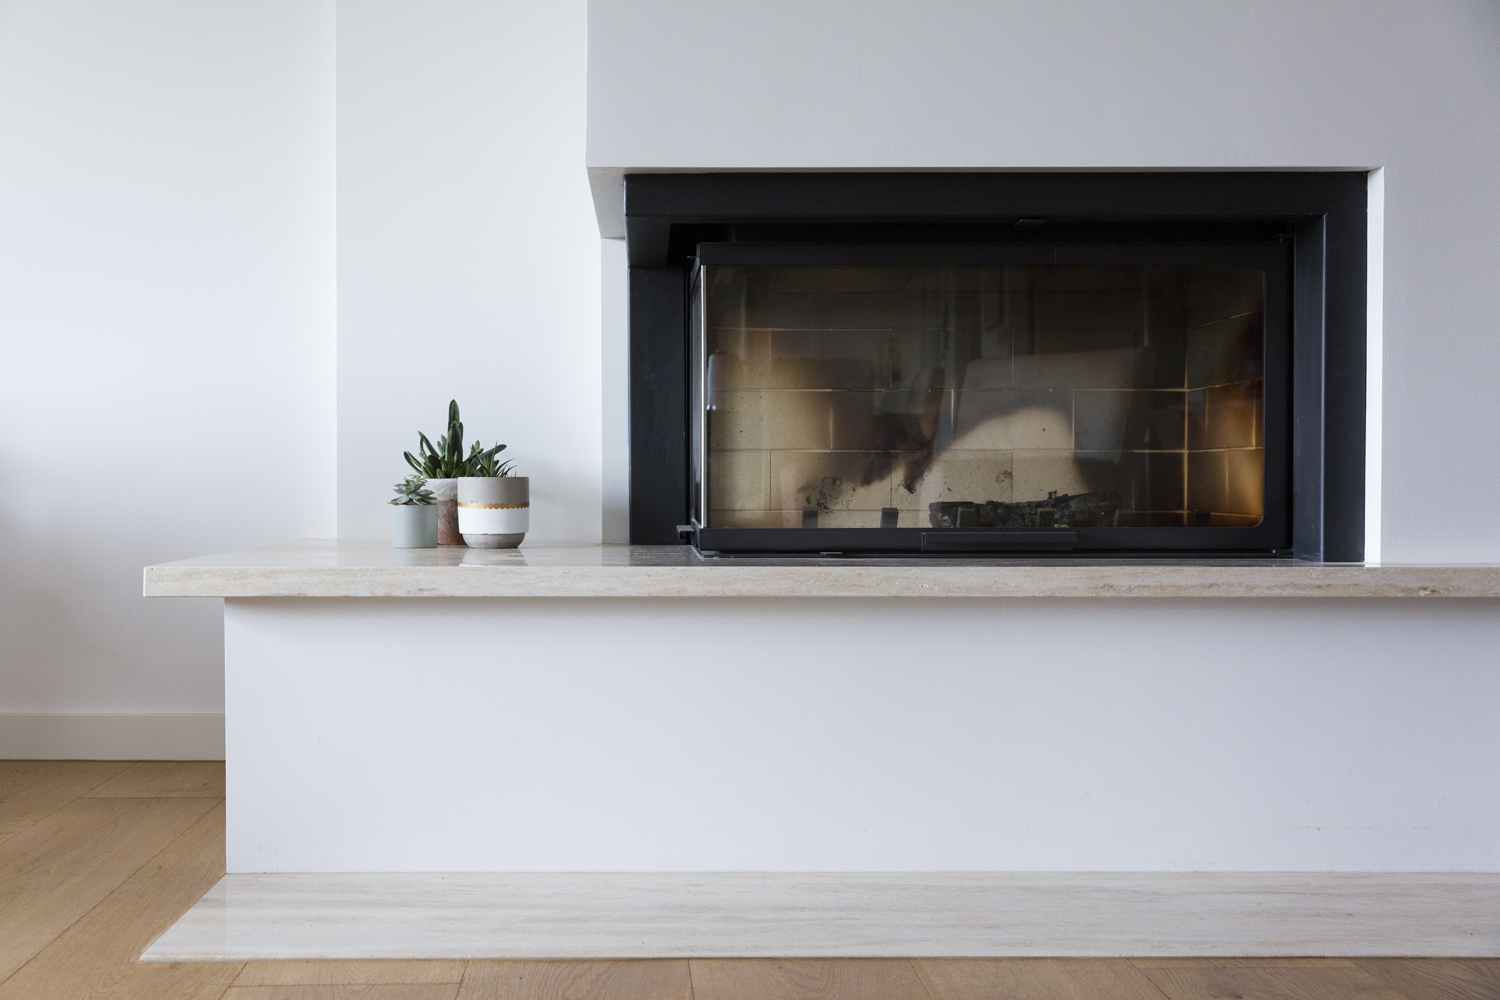 Red Hill house renovation. Fireplace and interior design by interior designer Meredith Lee.